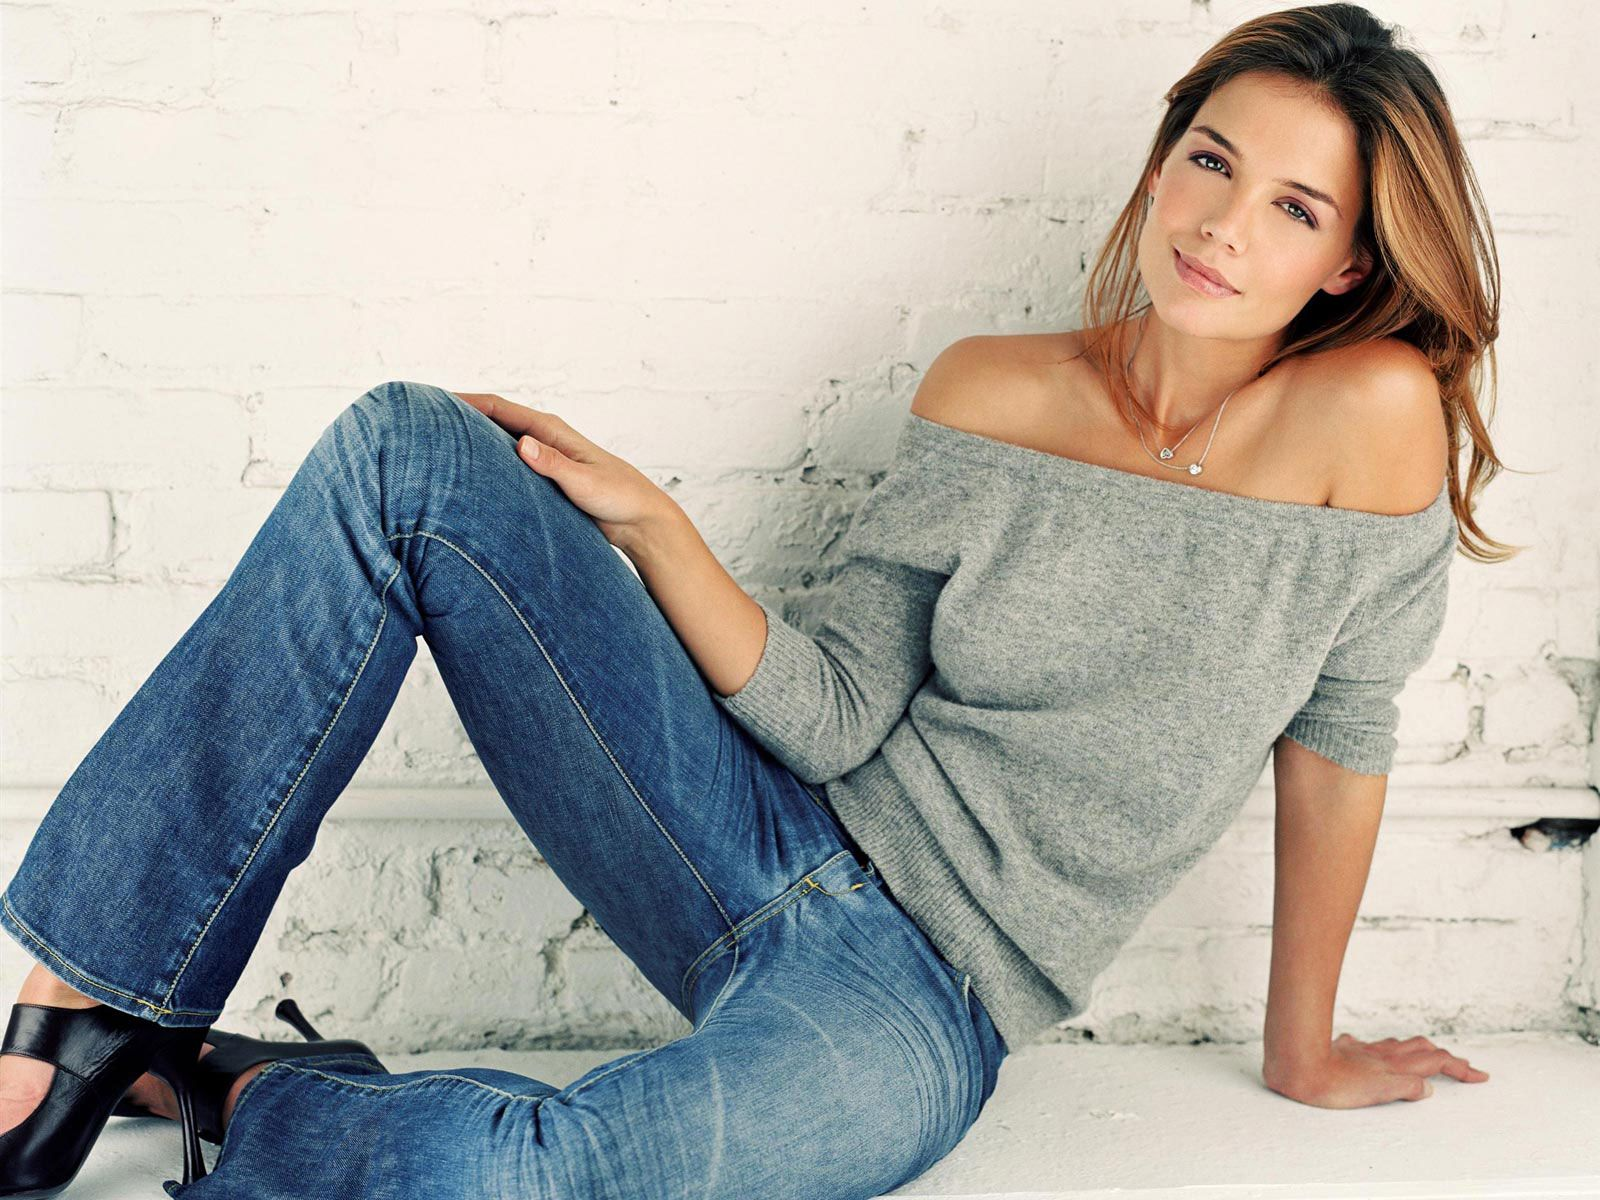 1600x1200 Katie Holmes Phone Booth Wallpapers | Wallpapers HD